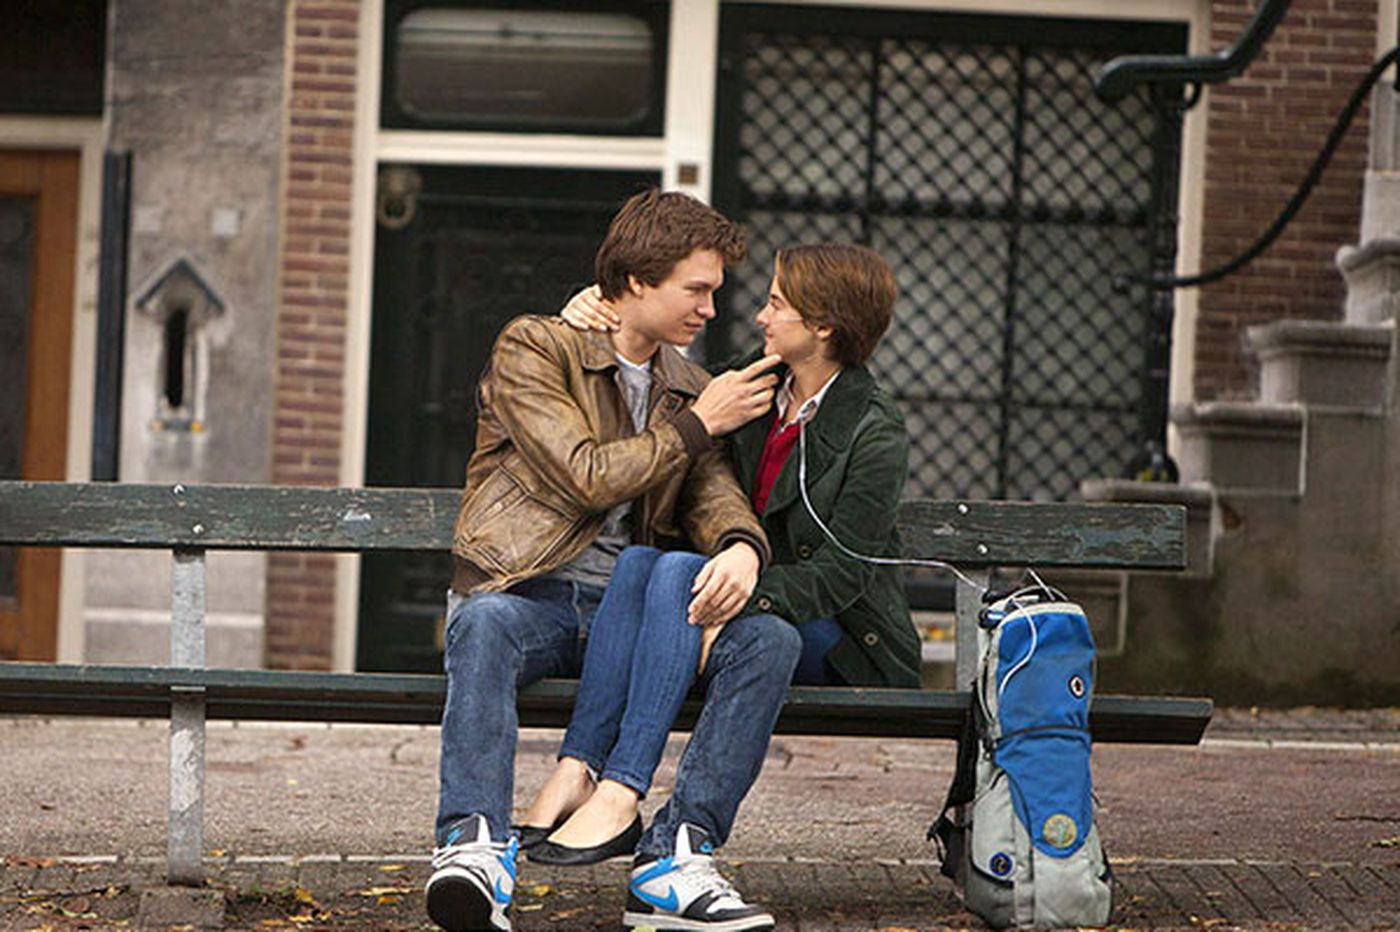 'The Fault in Our Stars': Tale of dying teens in love a terrific tear-jerker